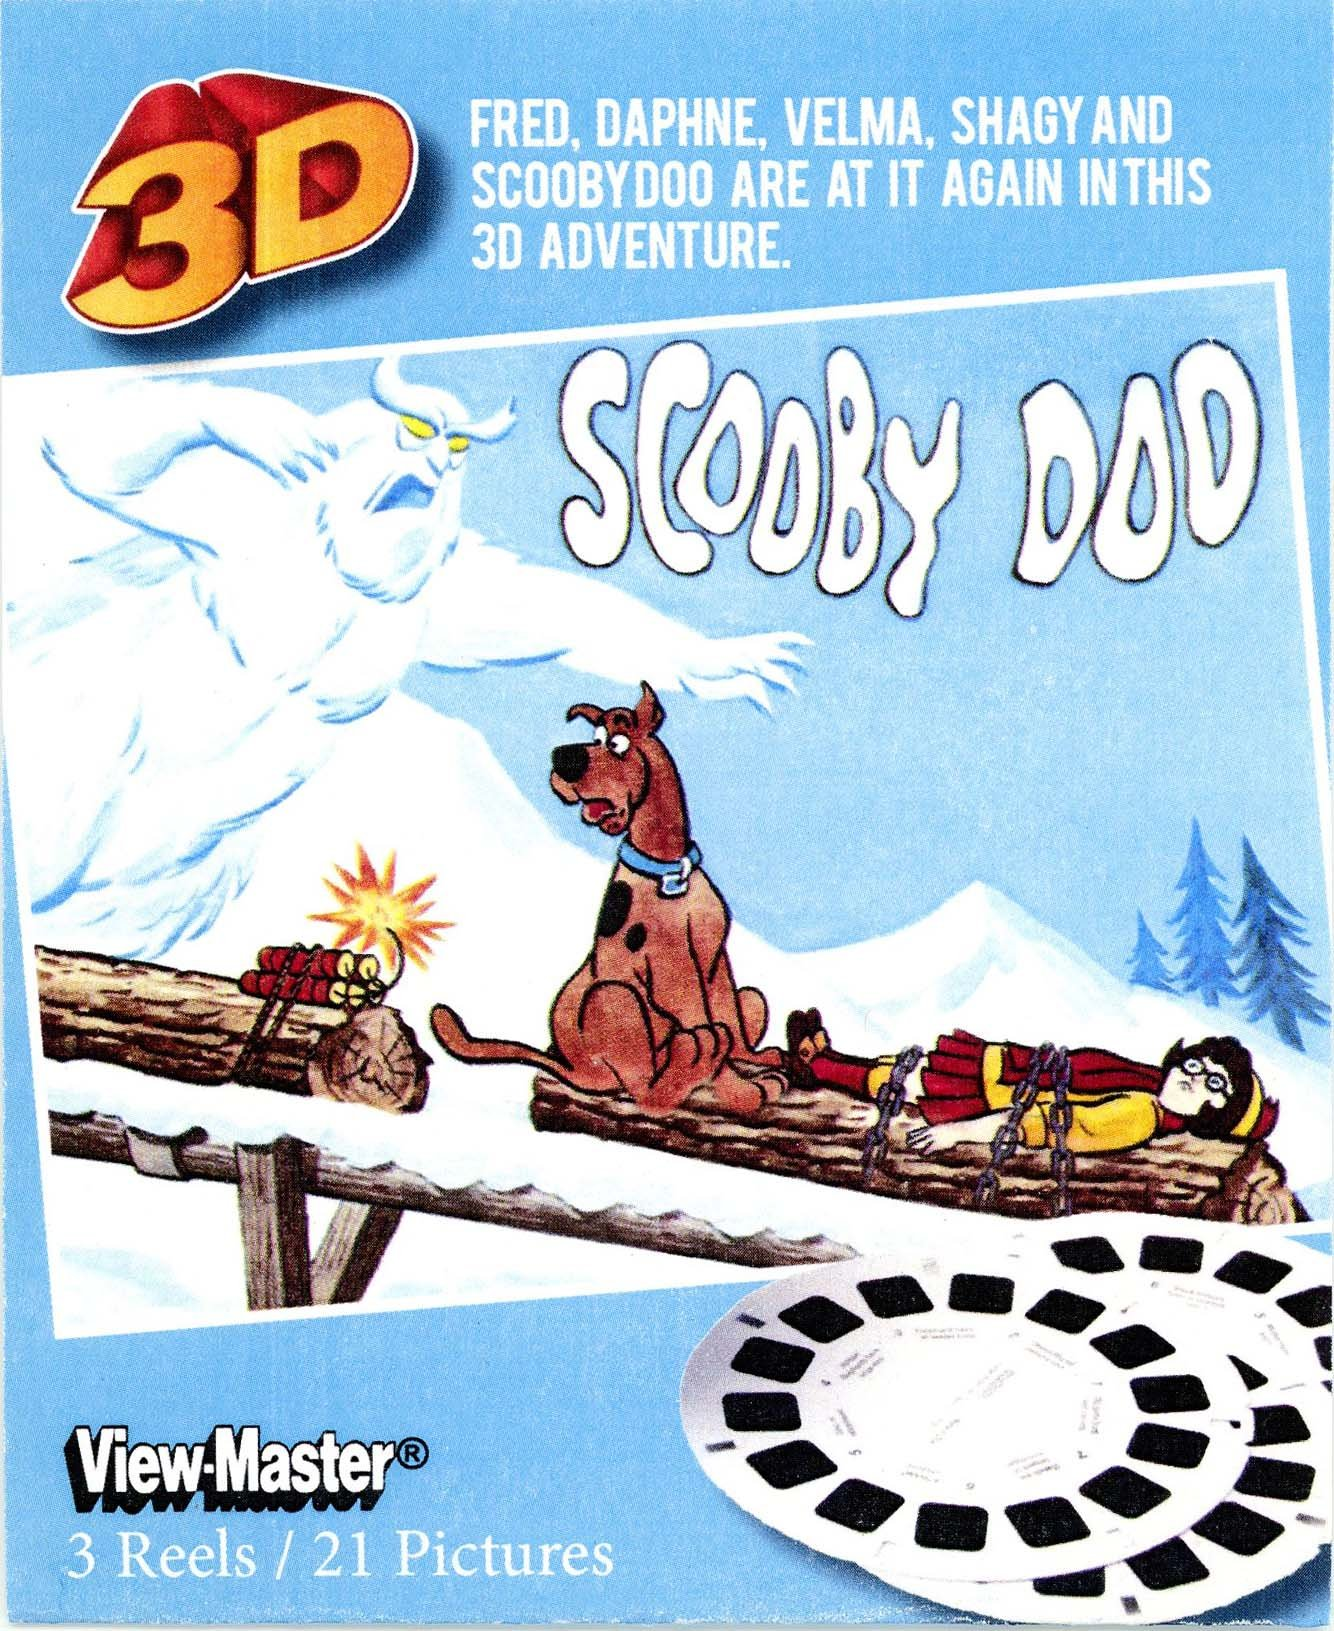 Scooby Doo View-Master 3 reel Set - 21 3-D Images